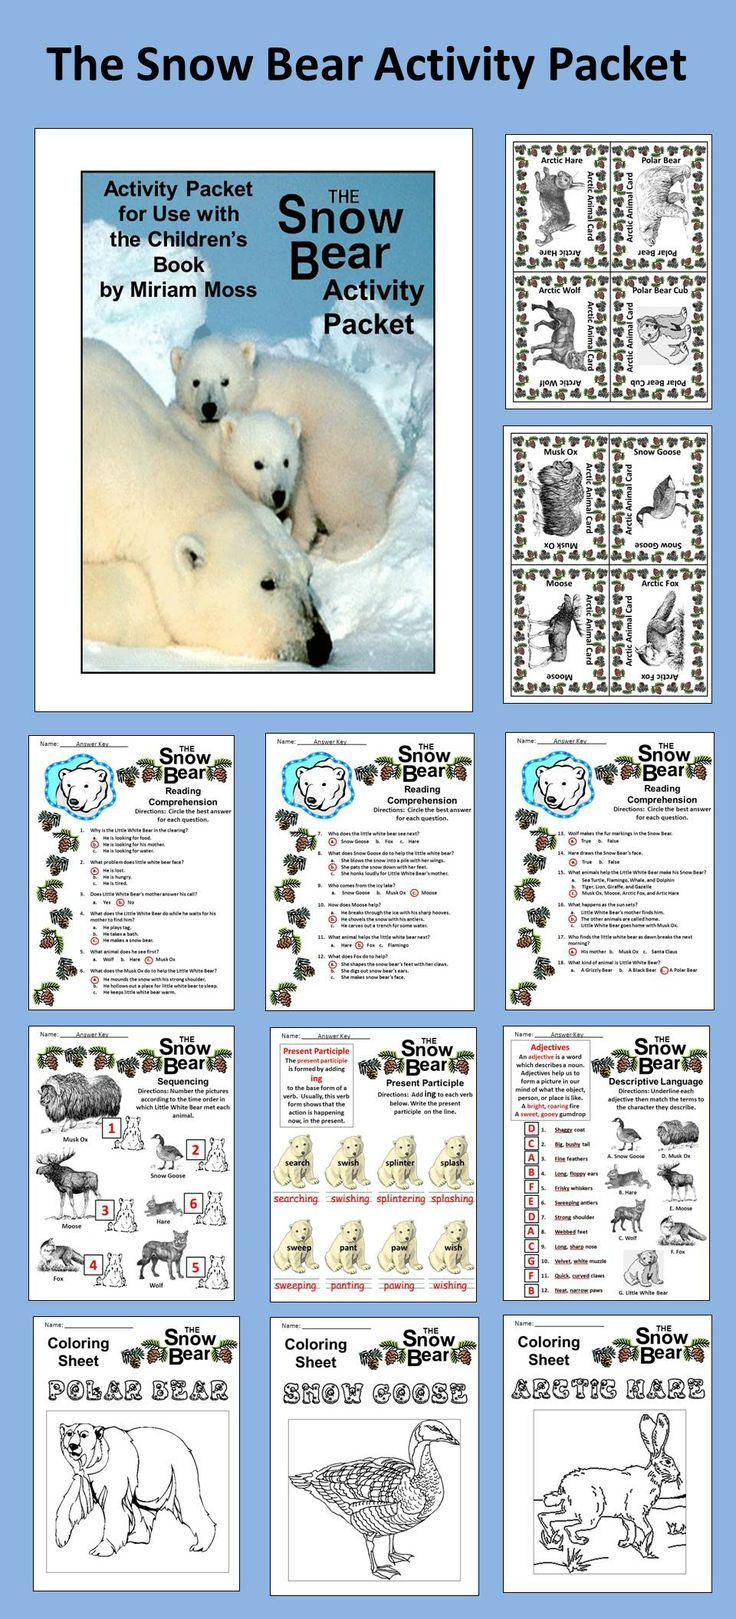 ... Snow Bear * One sequencing activity for events from The Snow Bear